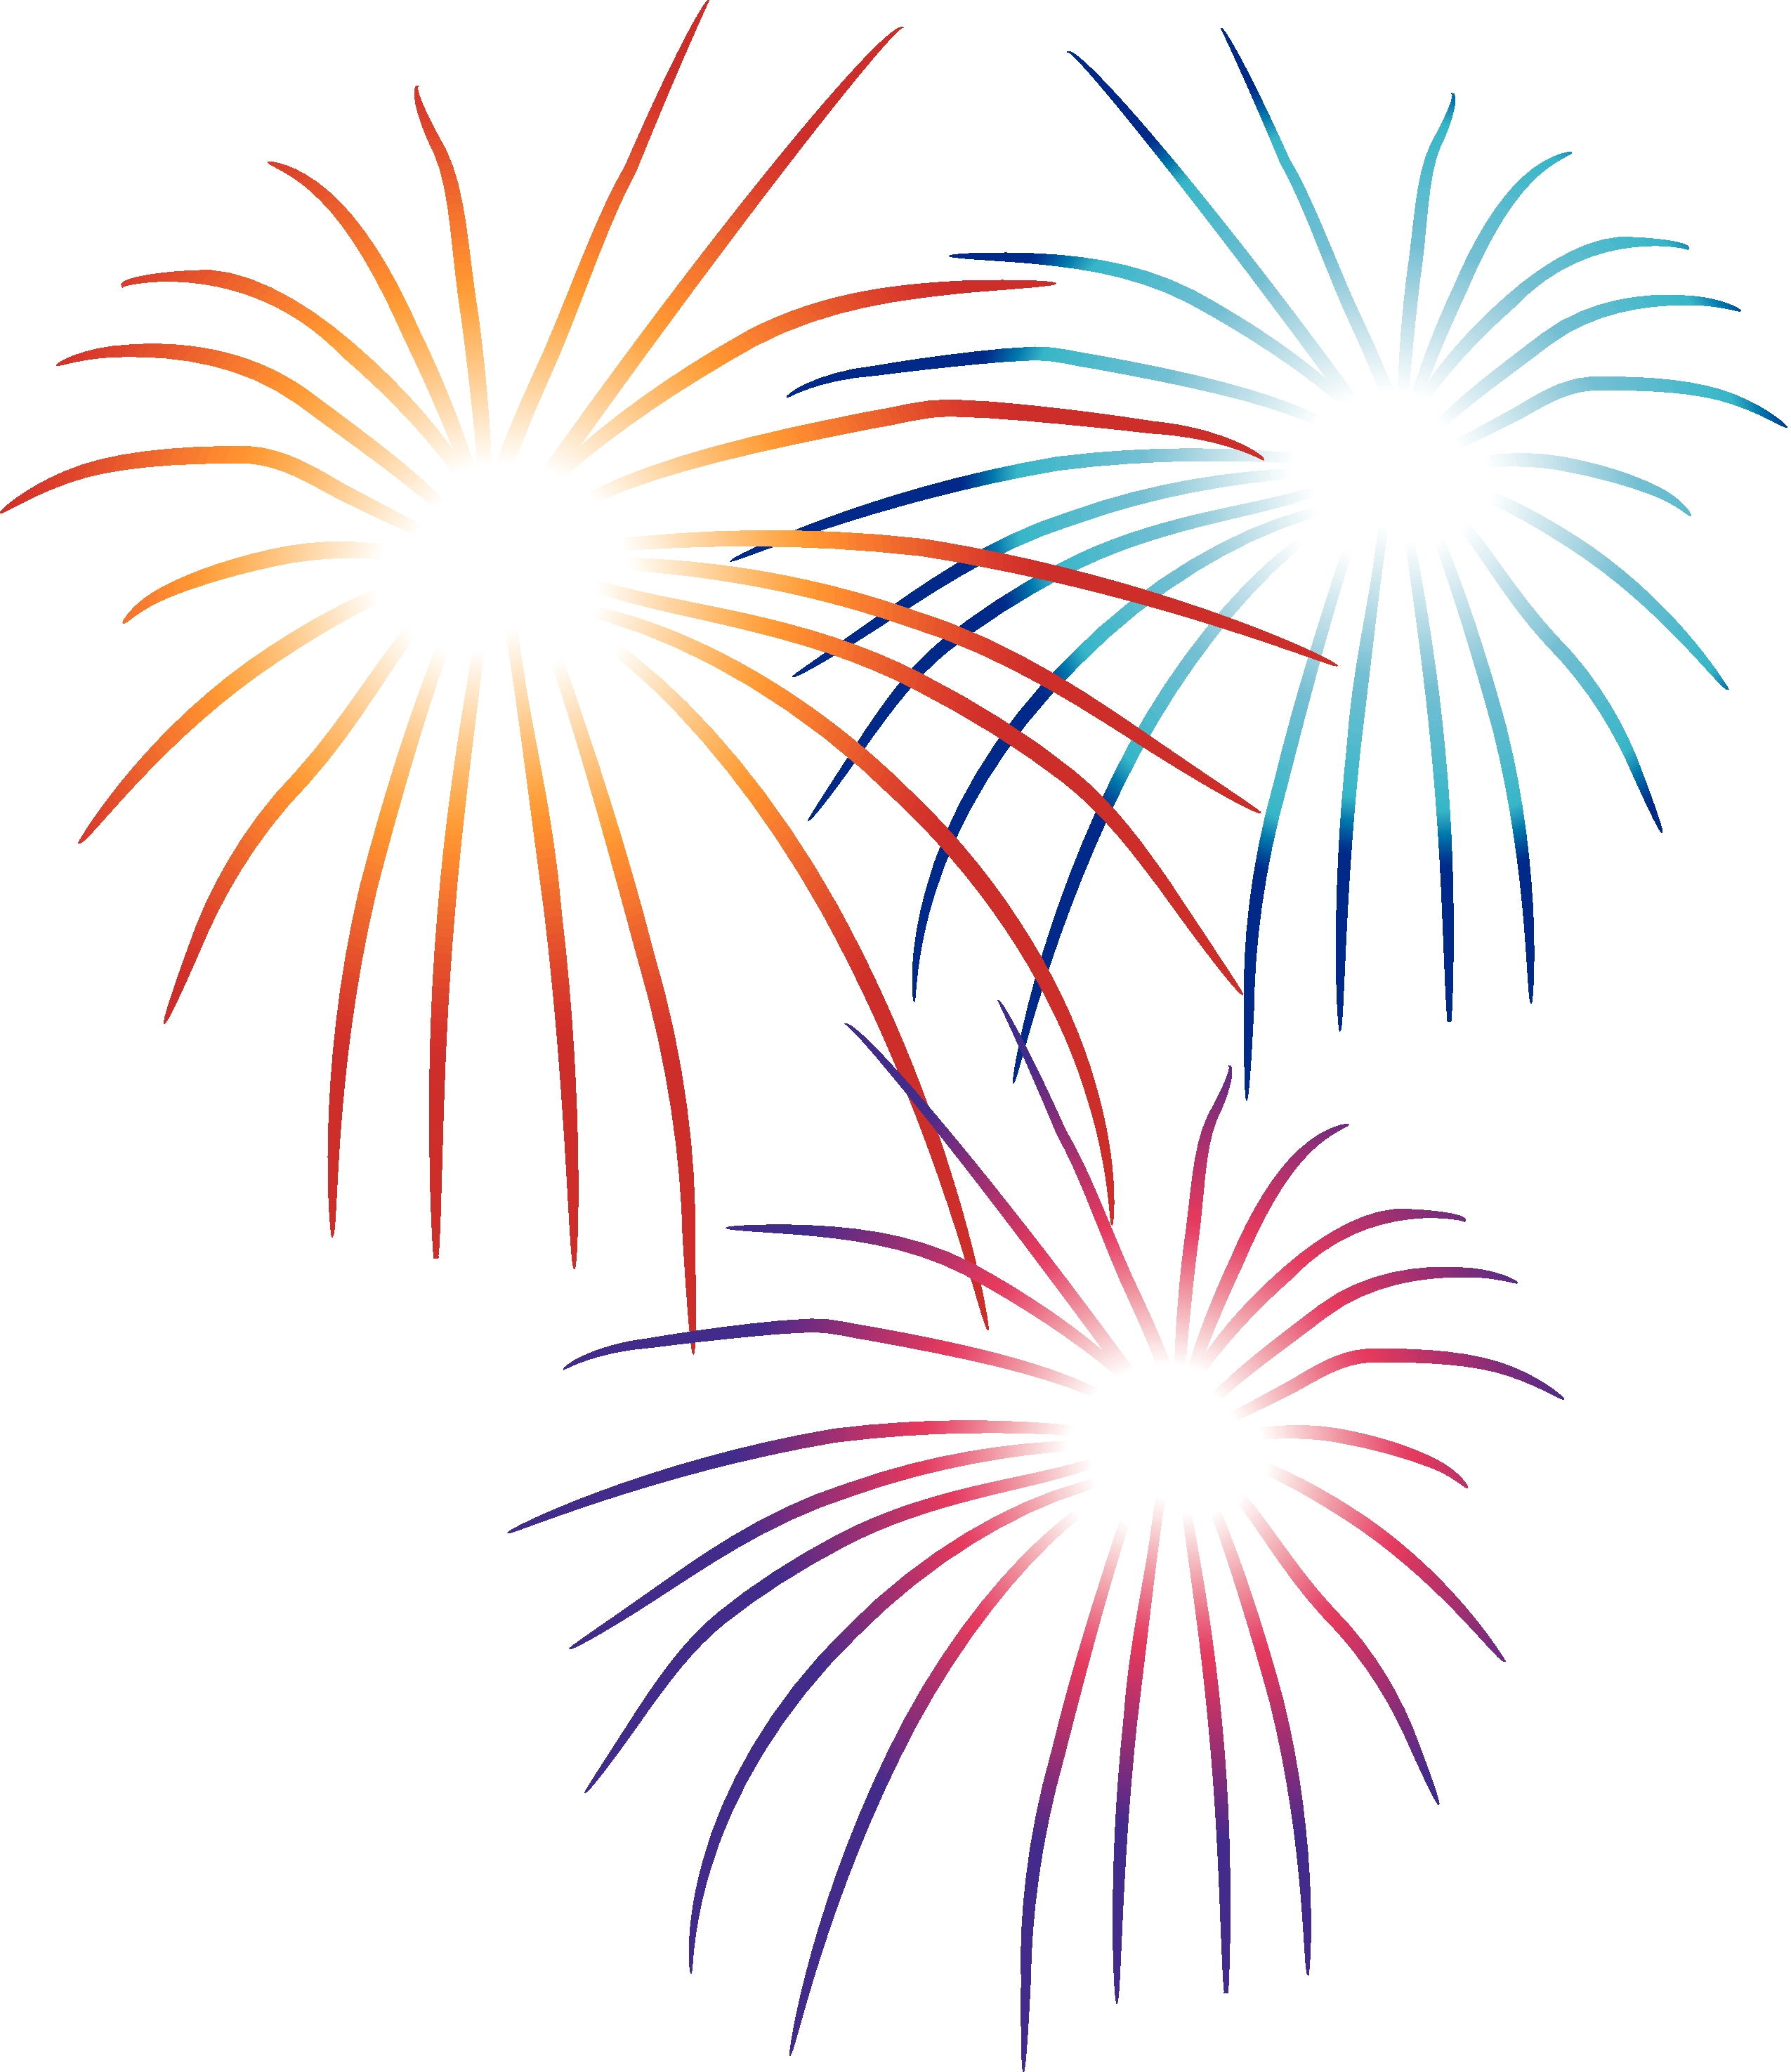 New clipart background graphic freeuse library Fireworks Clipart No Background | Free download best ... graphic freeuse library